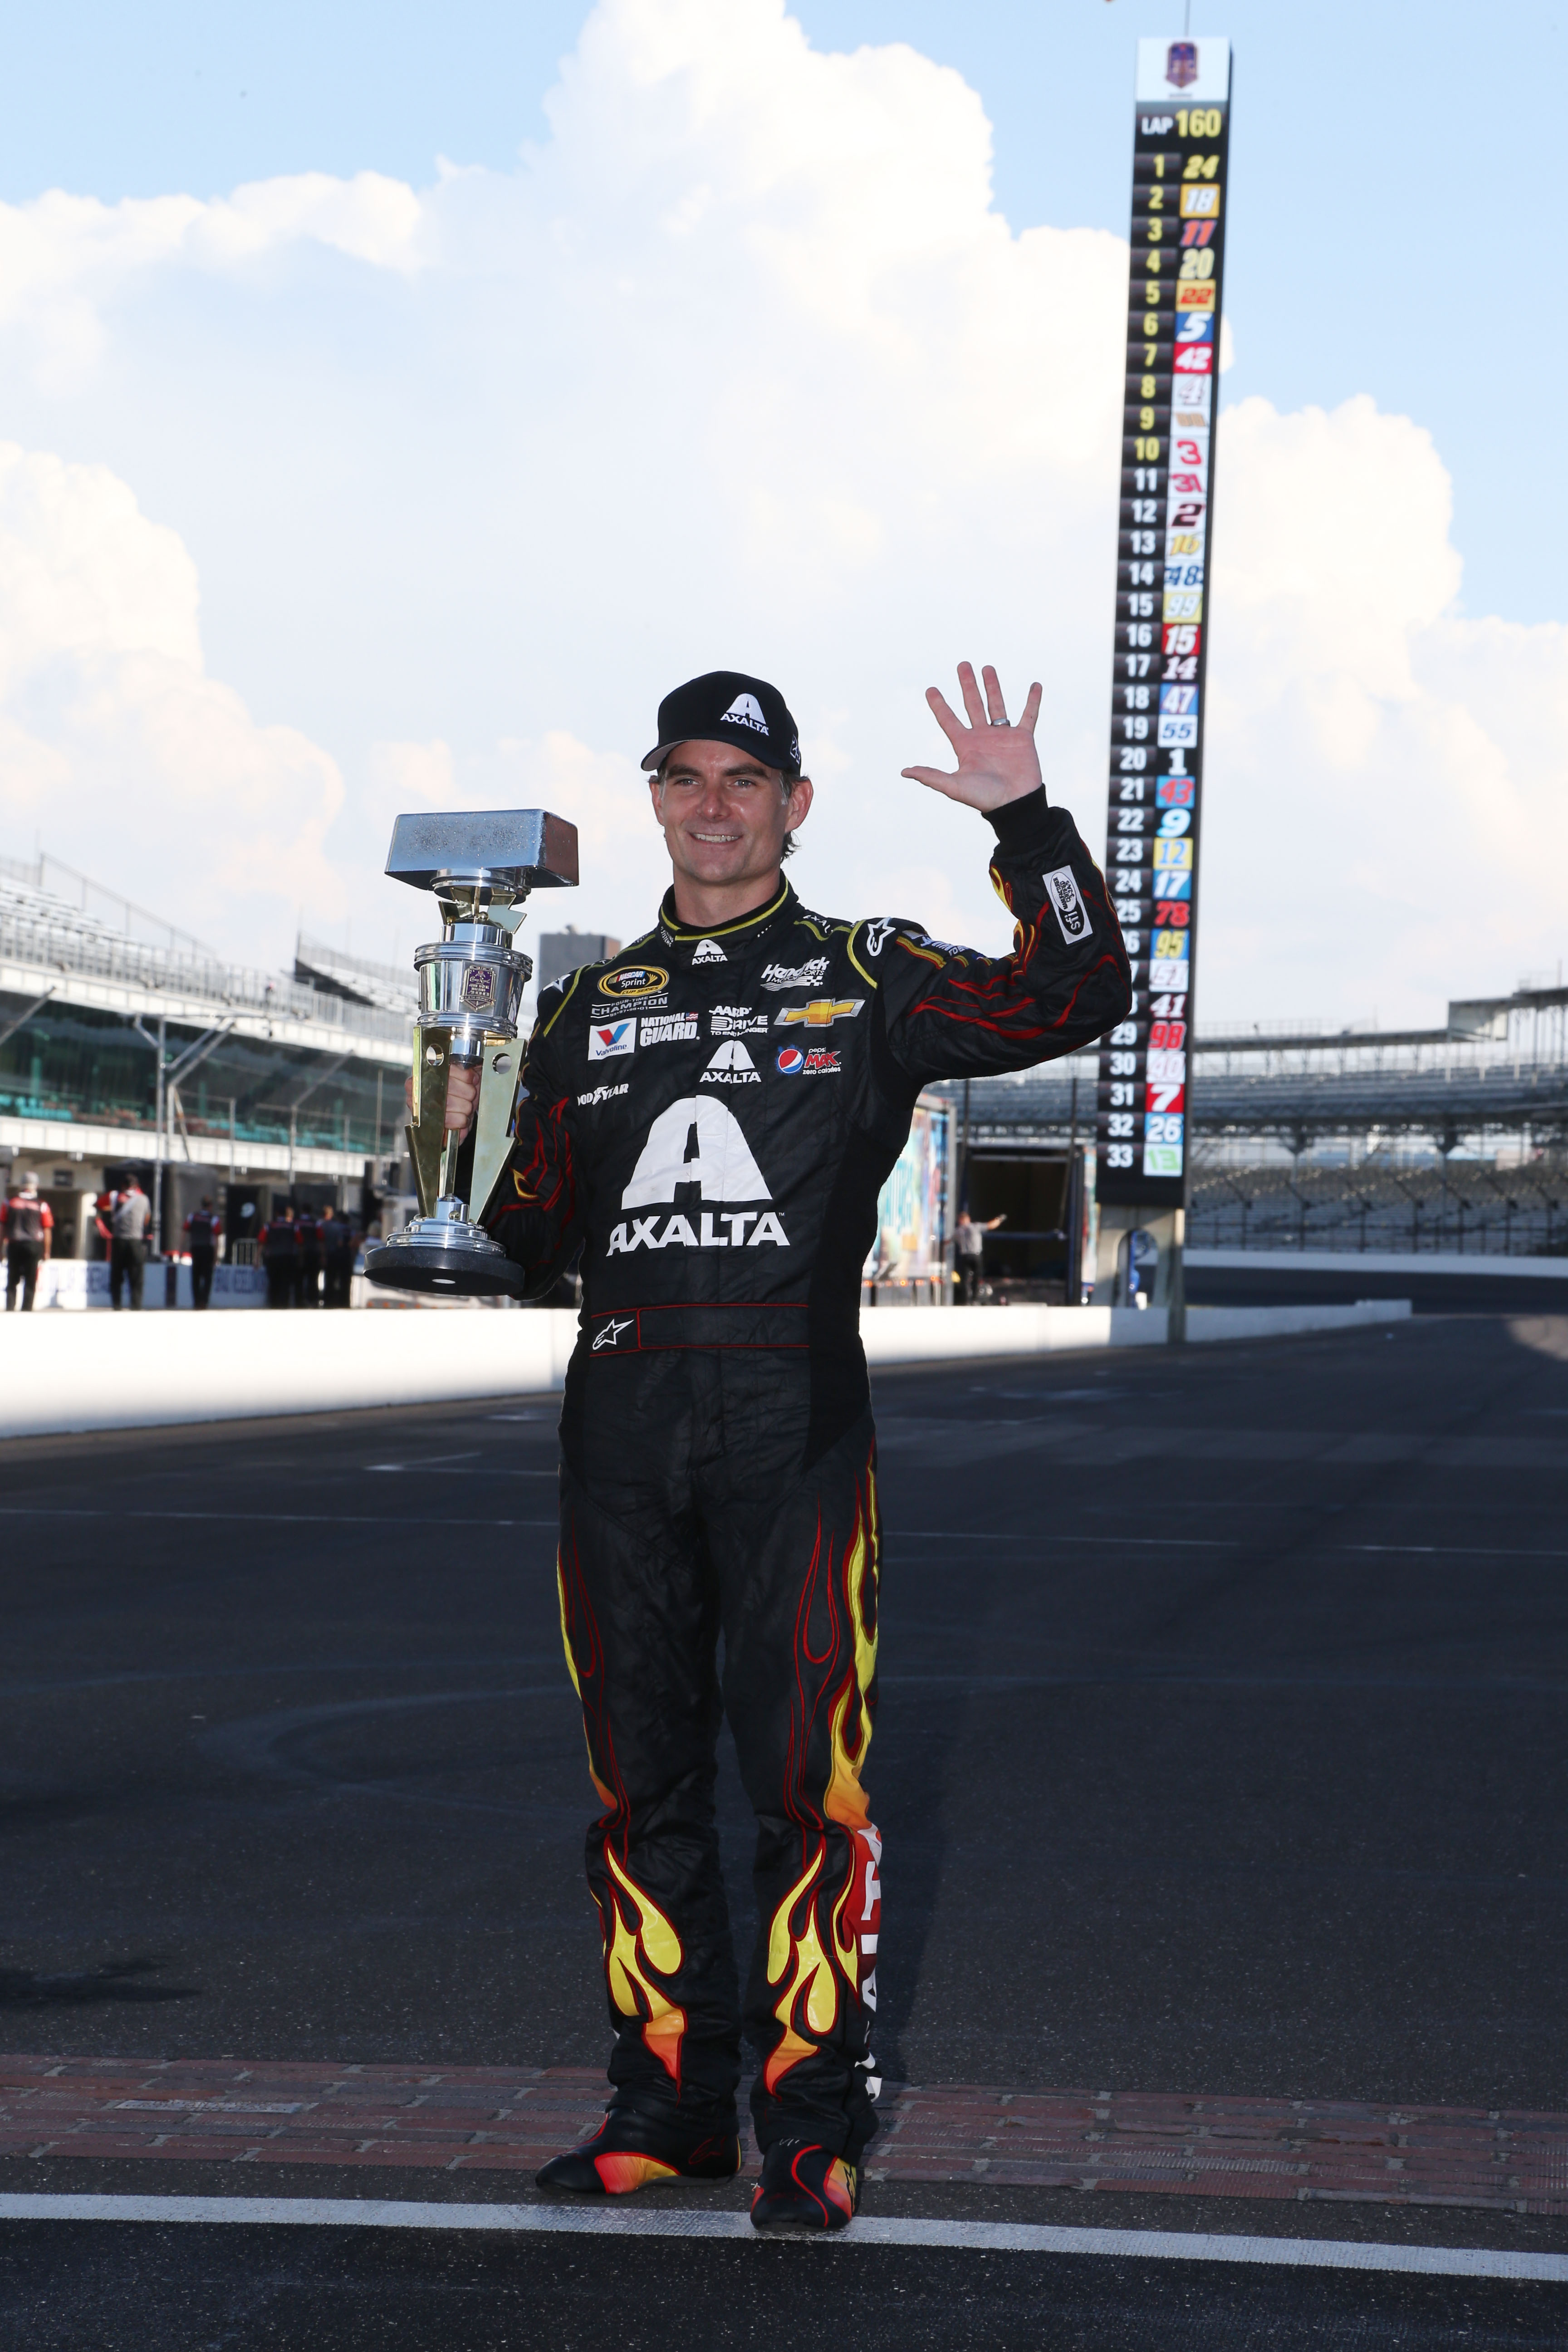 Jul 27, 2014; Speedway, IN, USA; NASCAR Sprint Cup driver Jeff Gordon who became a five time Brickyard 400 winner poses with the trophy and holds up five fingers after winning the Crown Royal Brickyard 400 at Indianapolis Motor Speedway. Mandatory Credit: Brian Spurlock-USA TODAY Sports